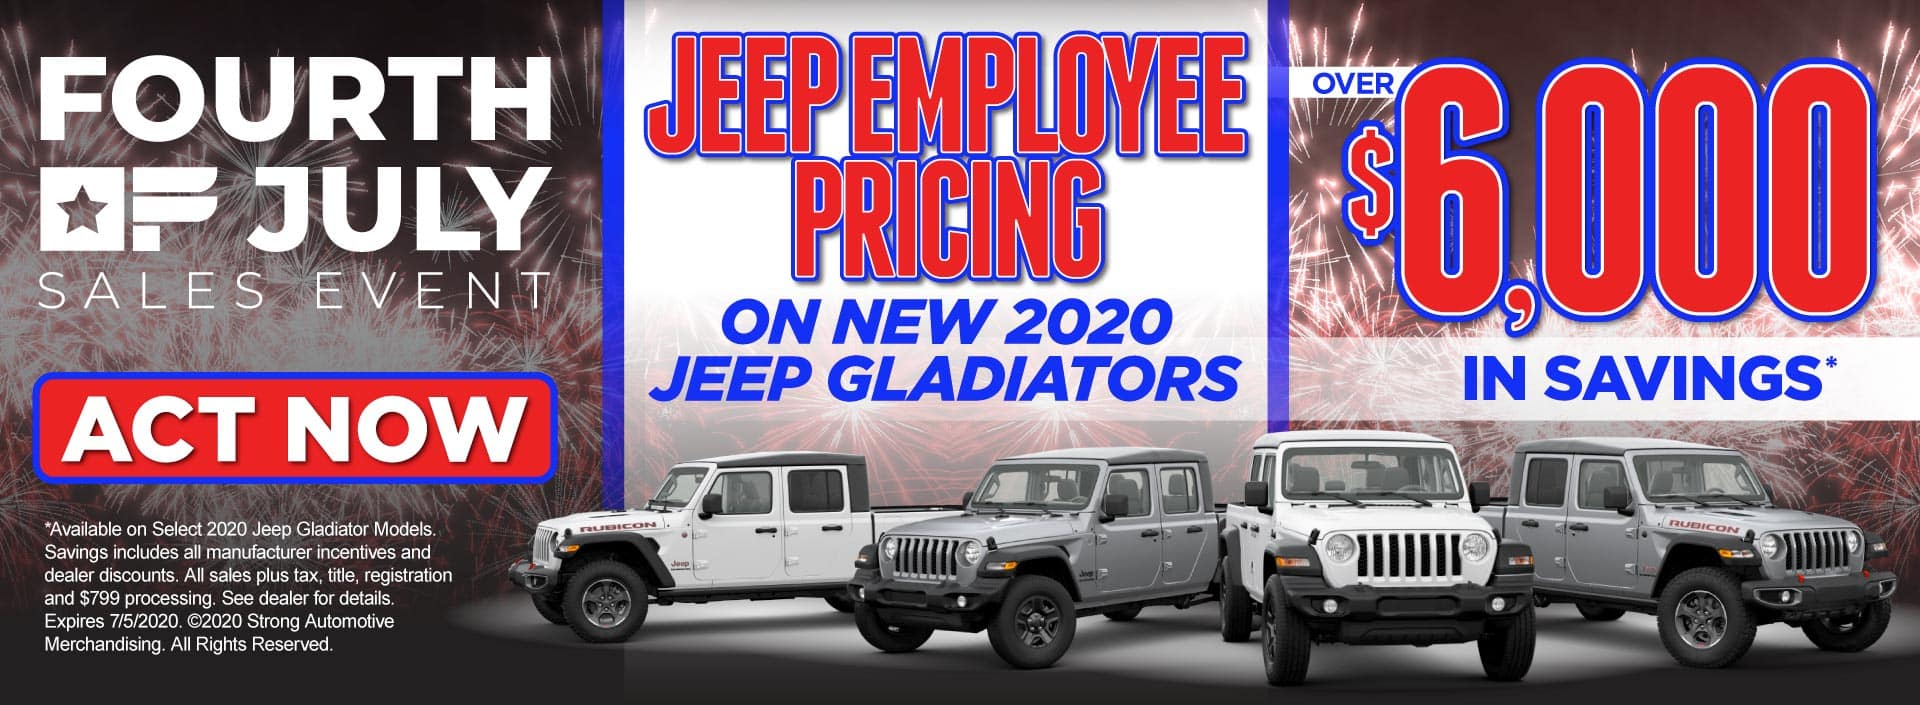 Jeep Employee Pricing on New 2020 Jeep Gladiators – Over $6,000 in savings* – Click to View Inventory